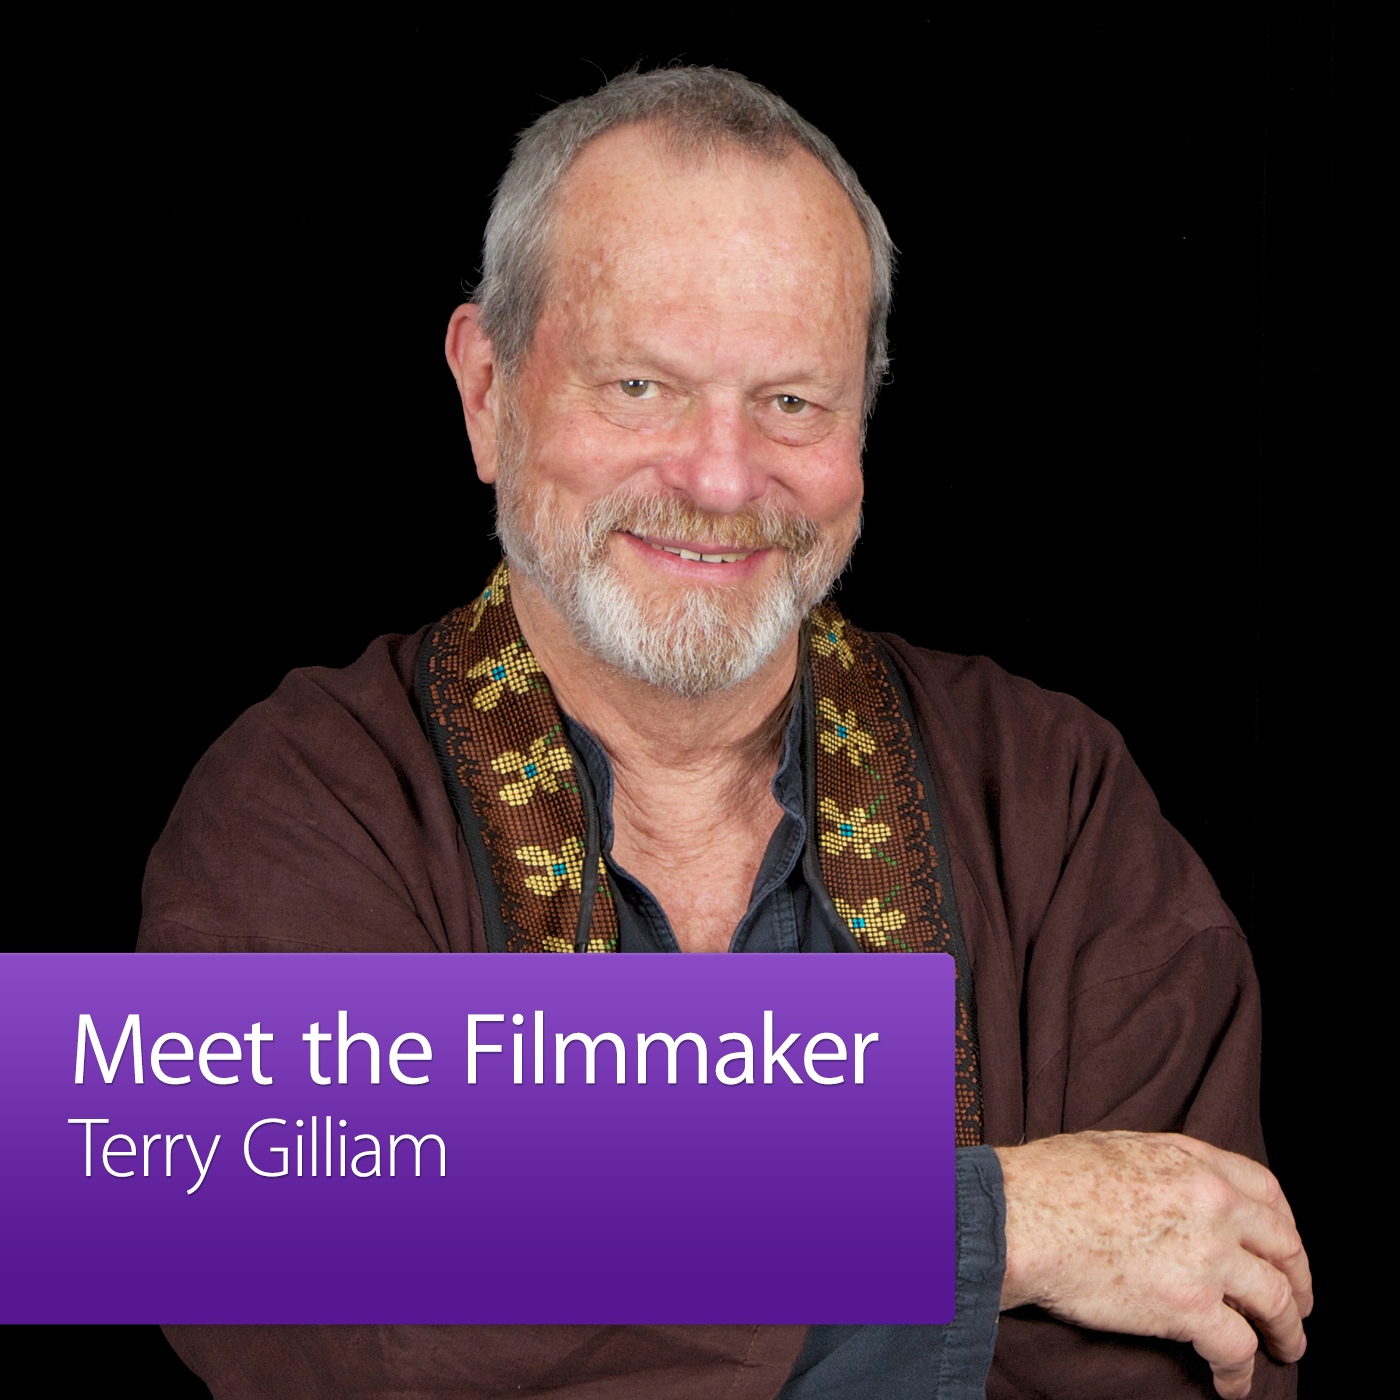 Terry Gilliam: Meet the Filmmaker